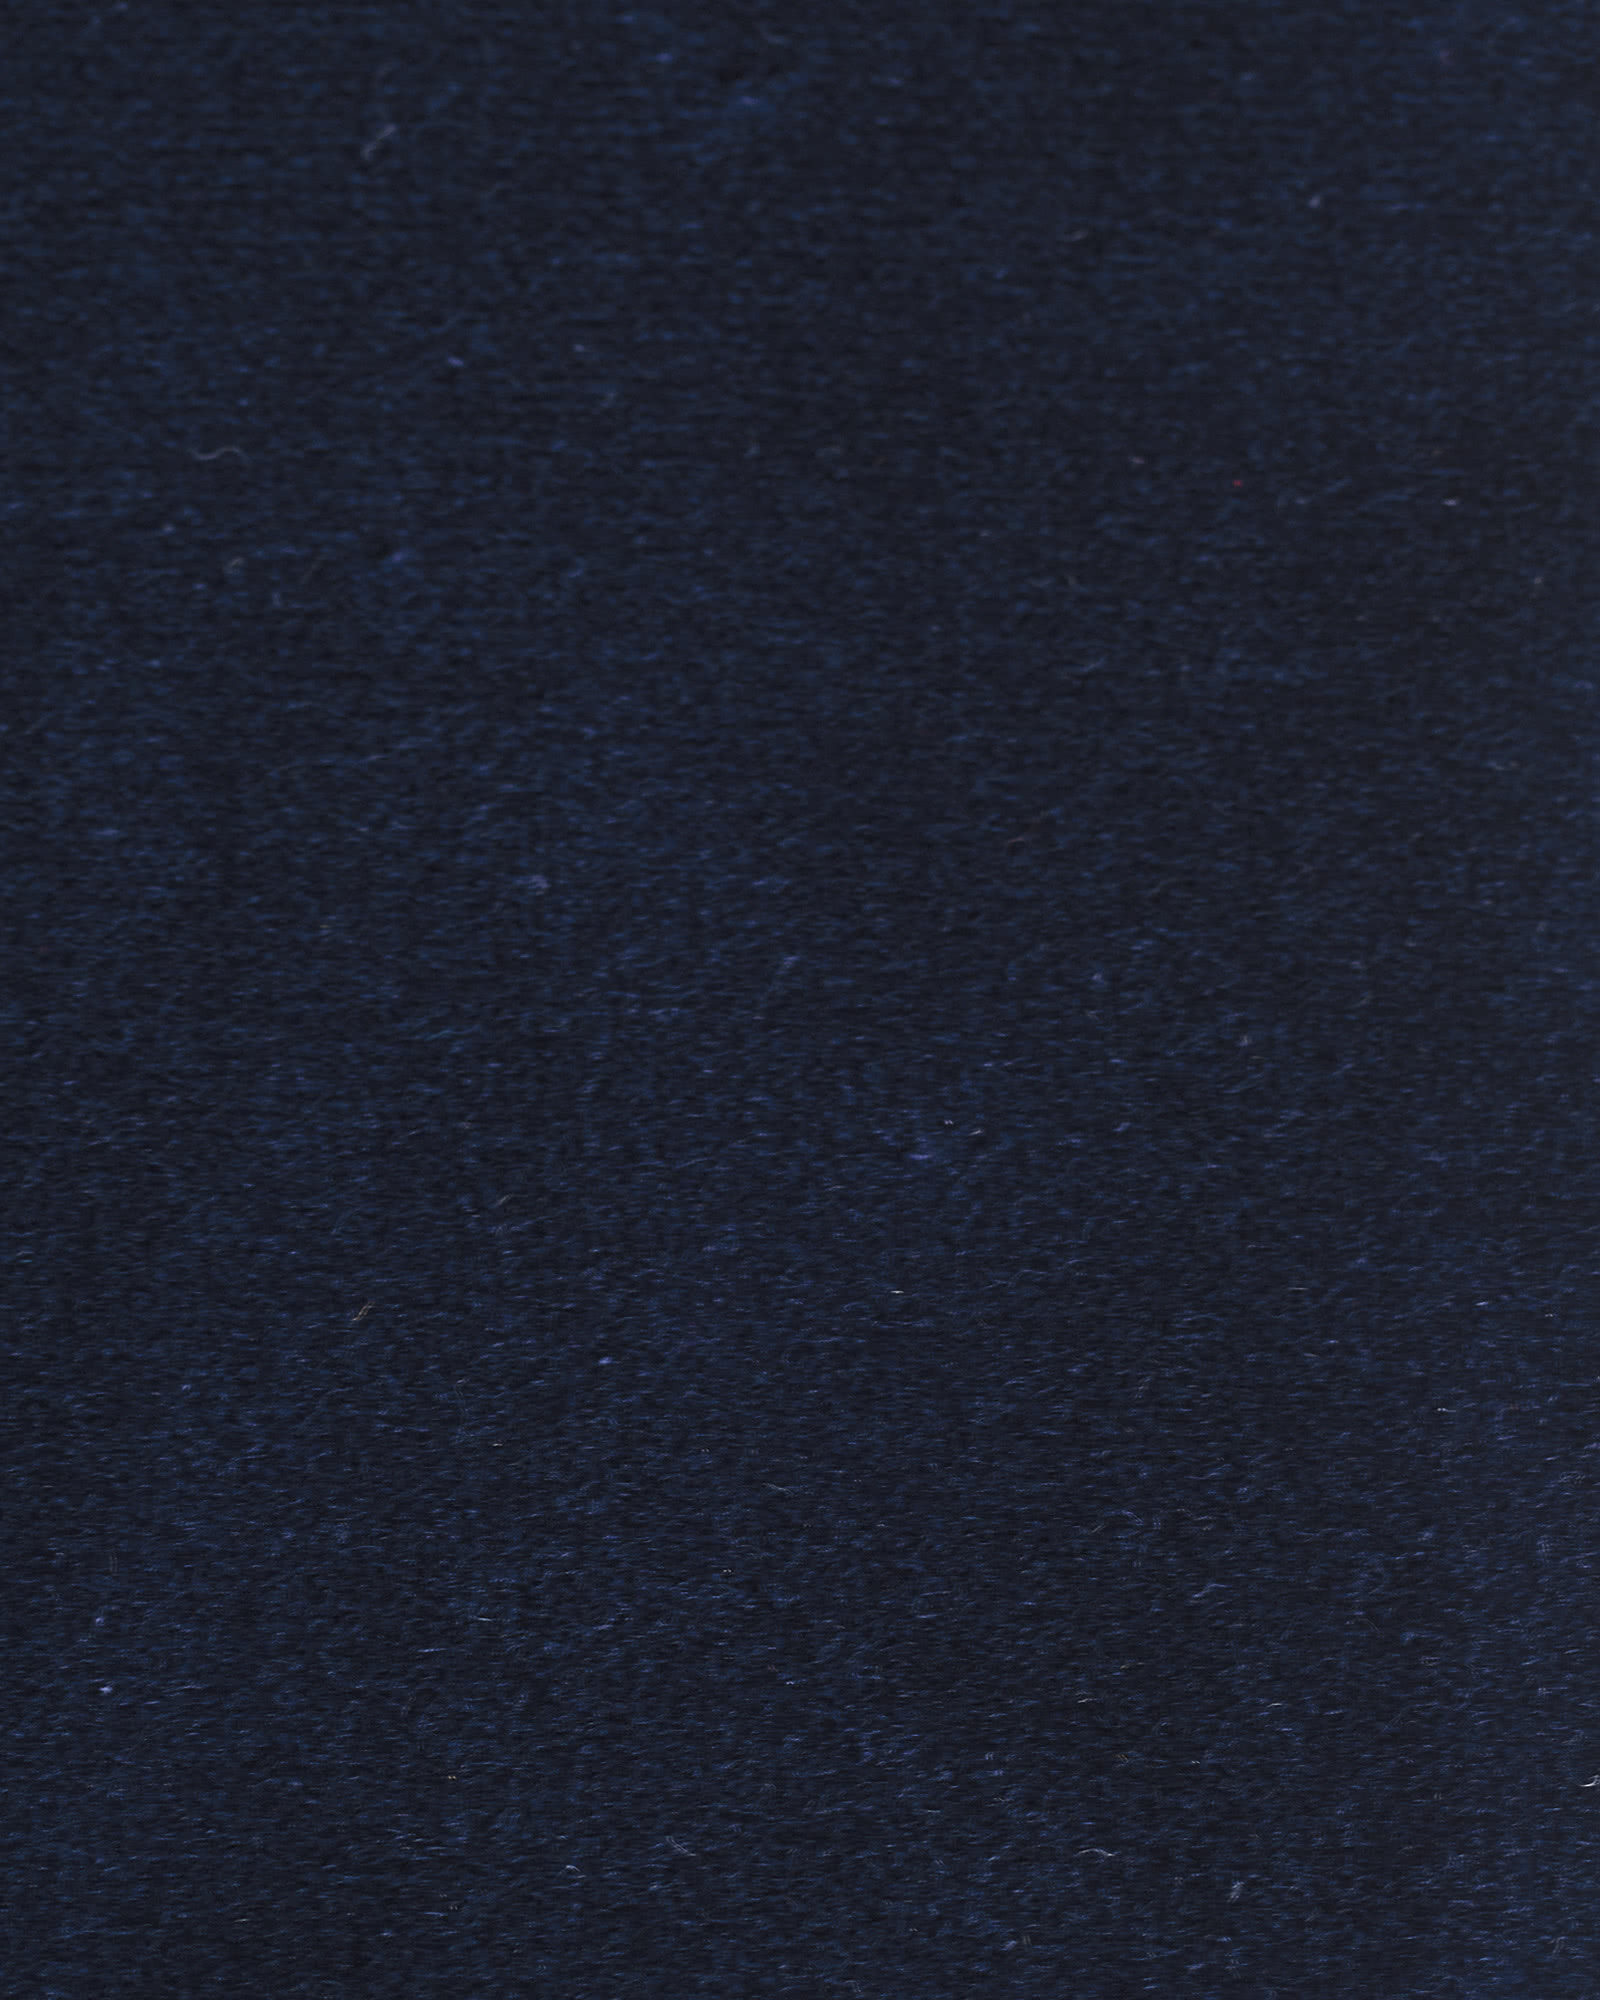 Cotton Velvet - Midnight,